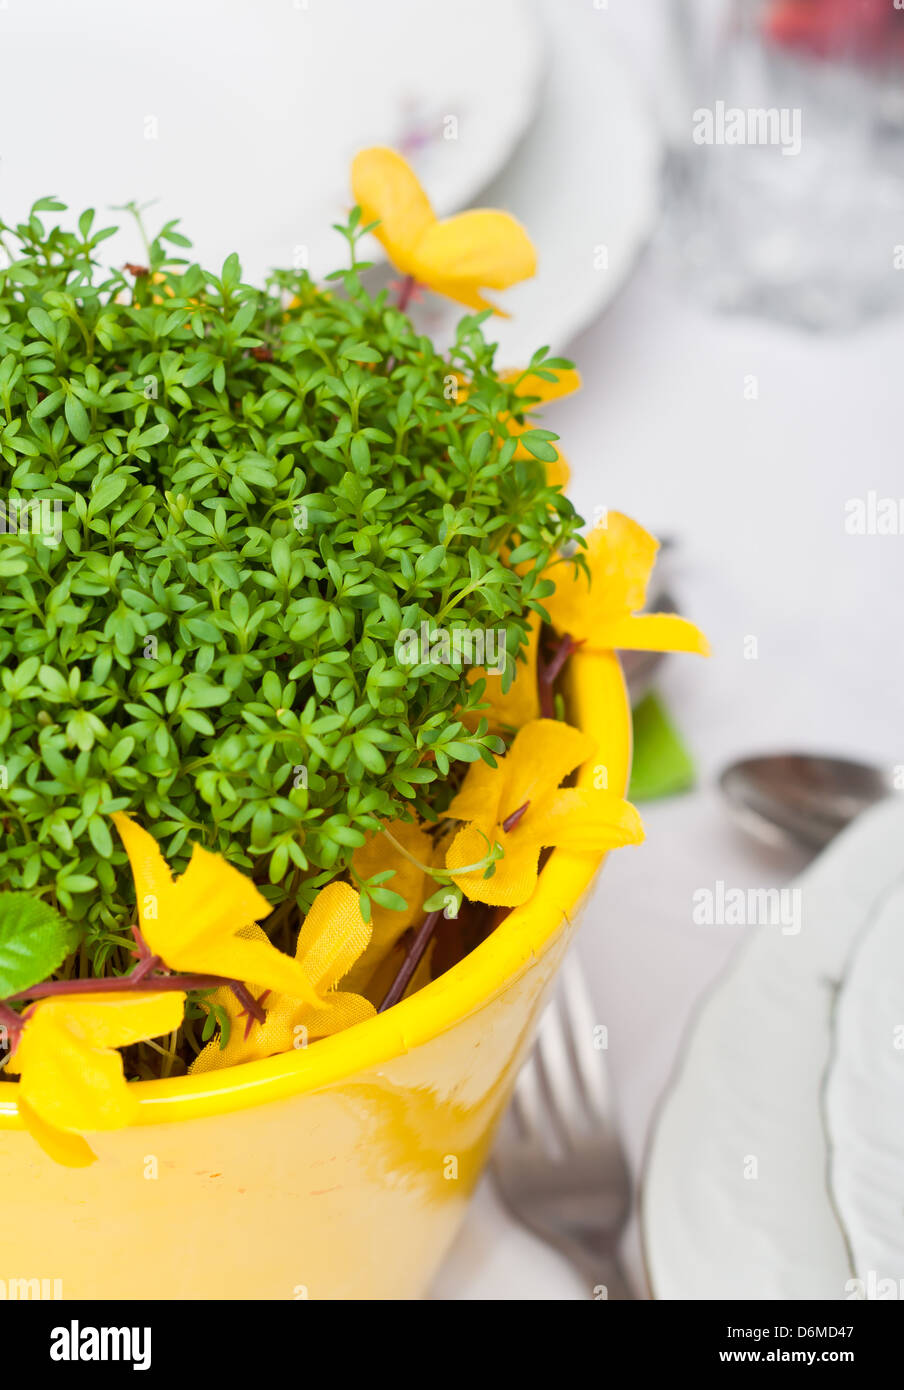 cress in the nice flowerpot - Stock Image